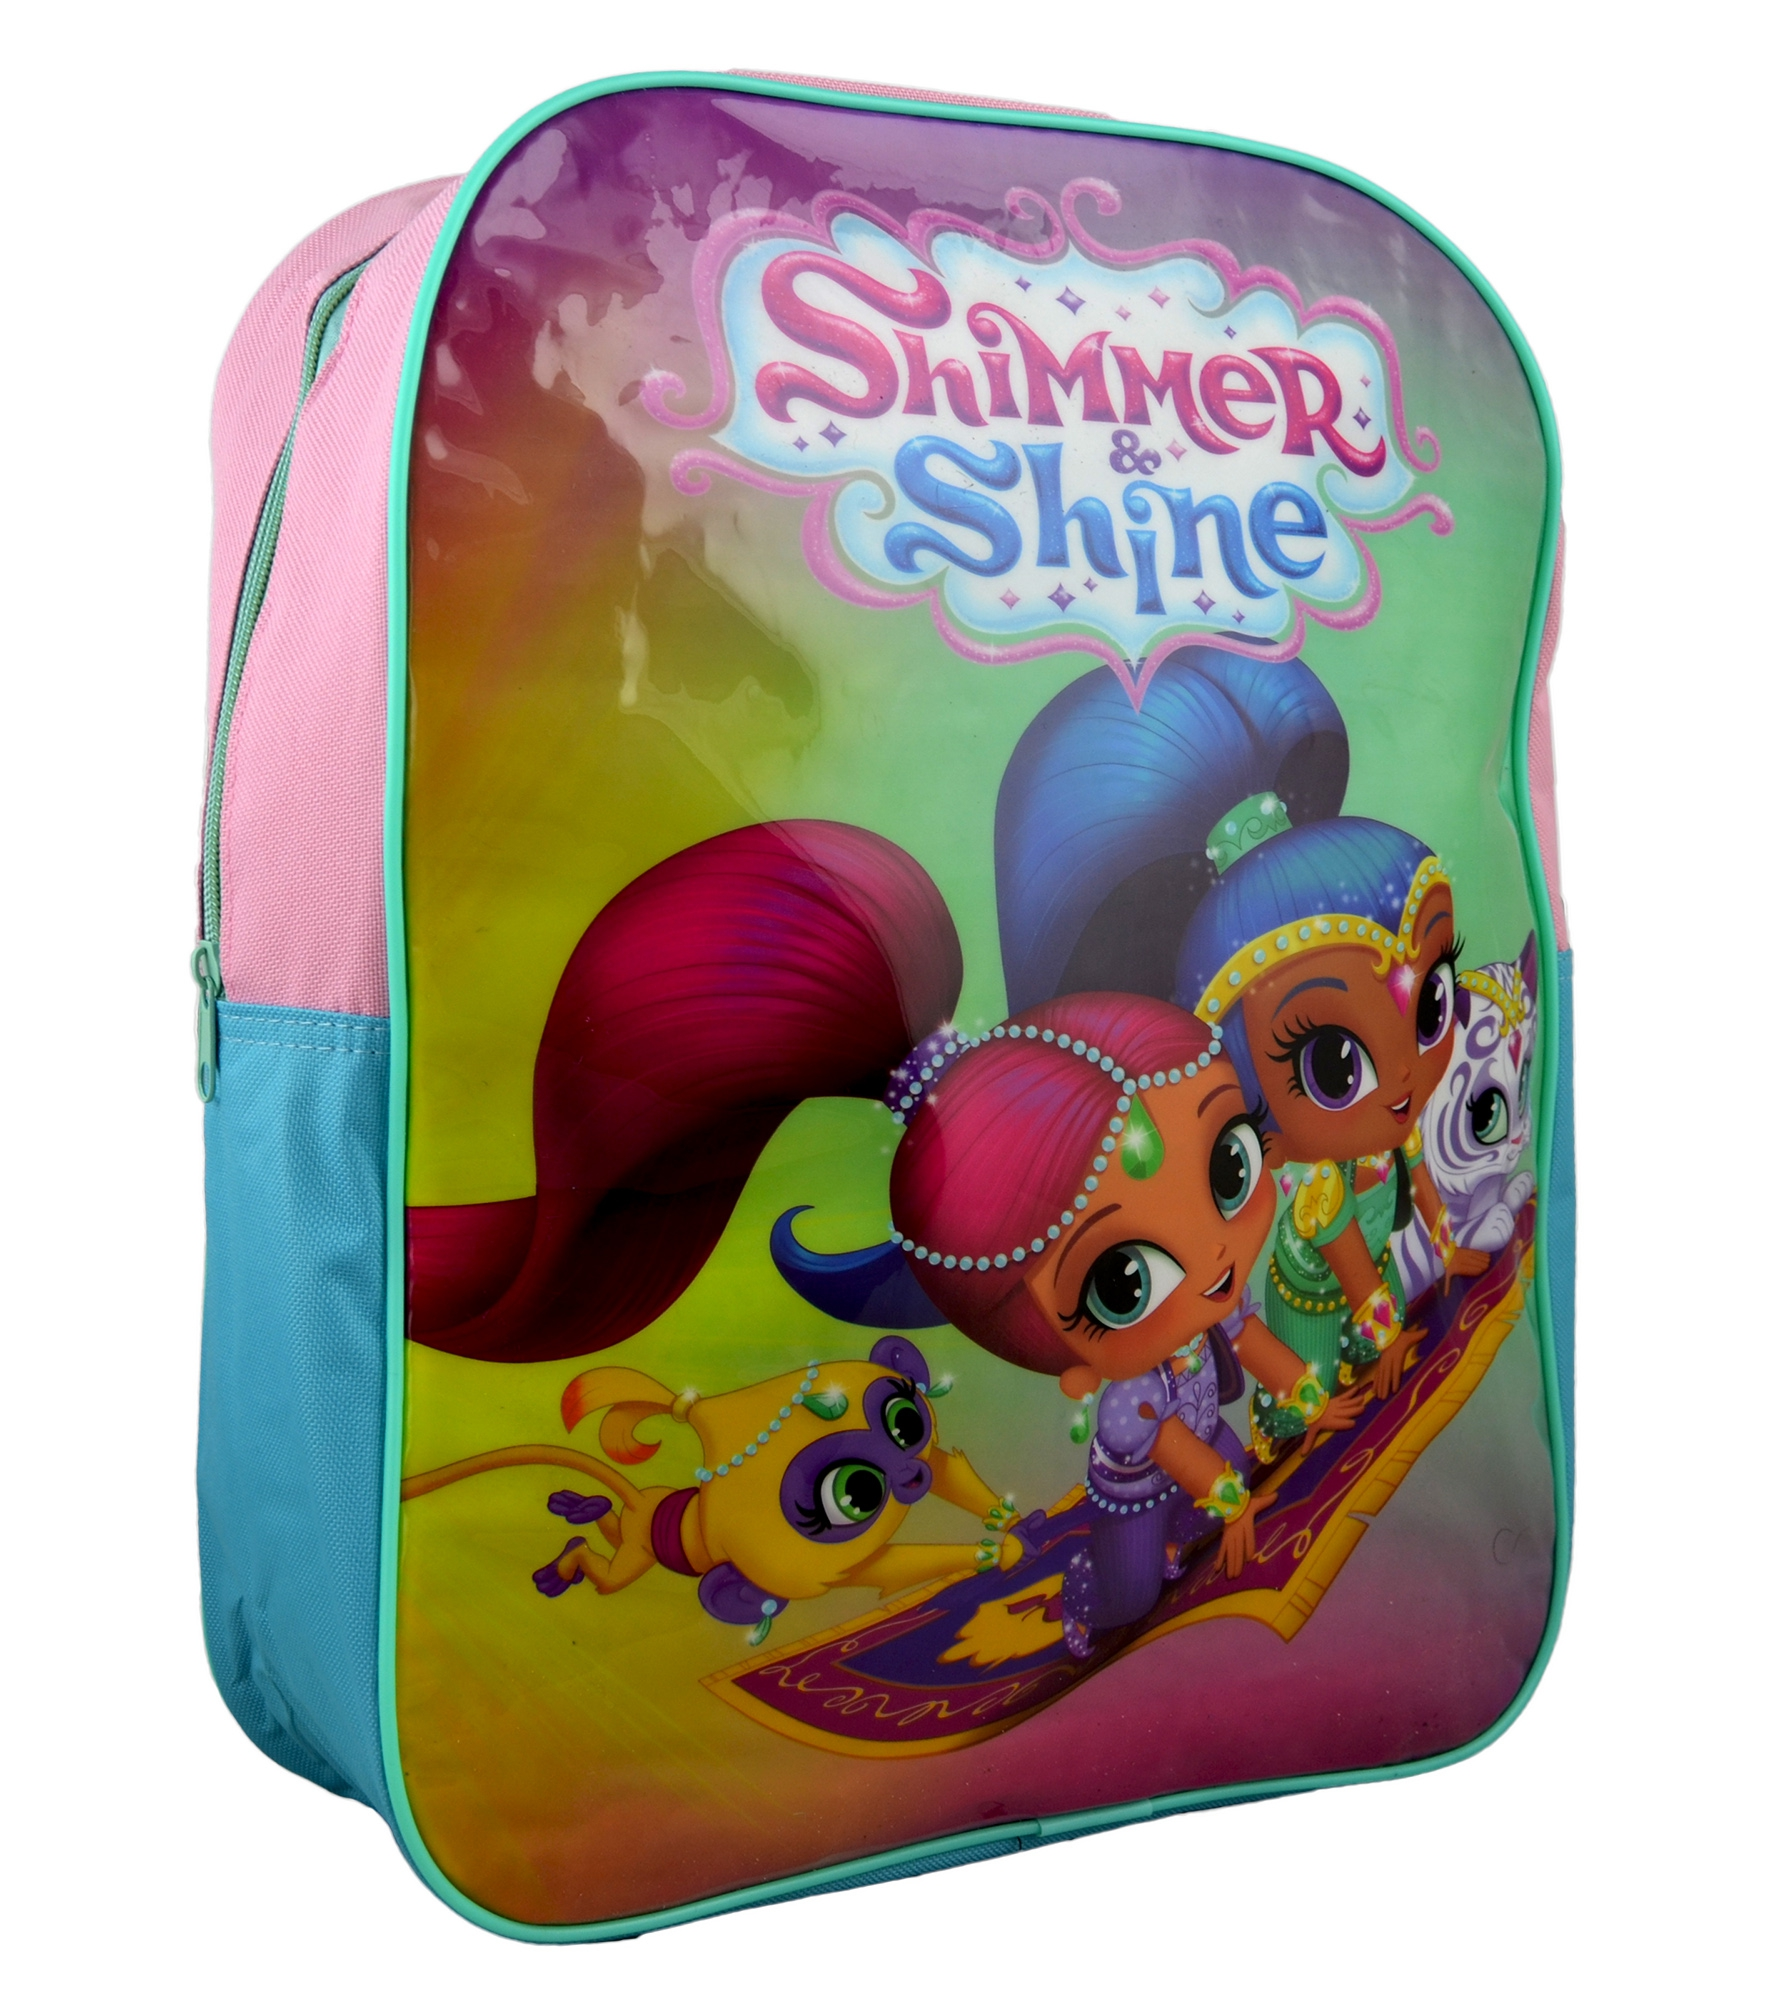 Shimmer & Shine 'Flying' Arch School Bag Rucksack Backpack